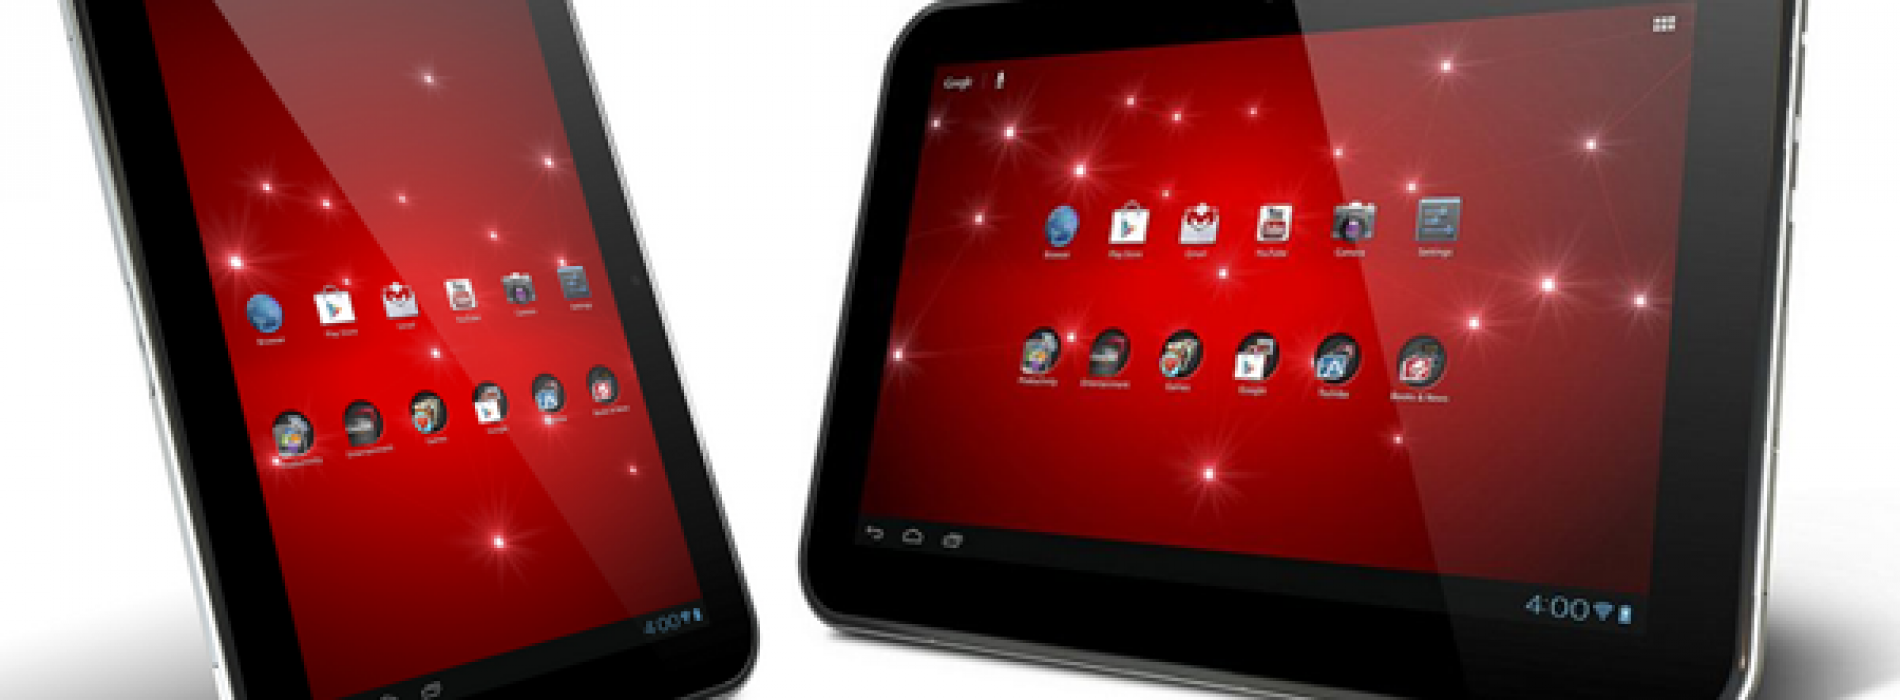 Toshiba Excite 13 review